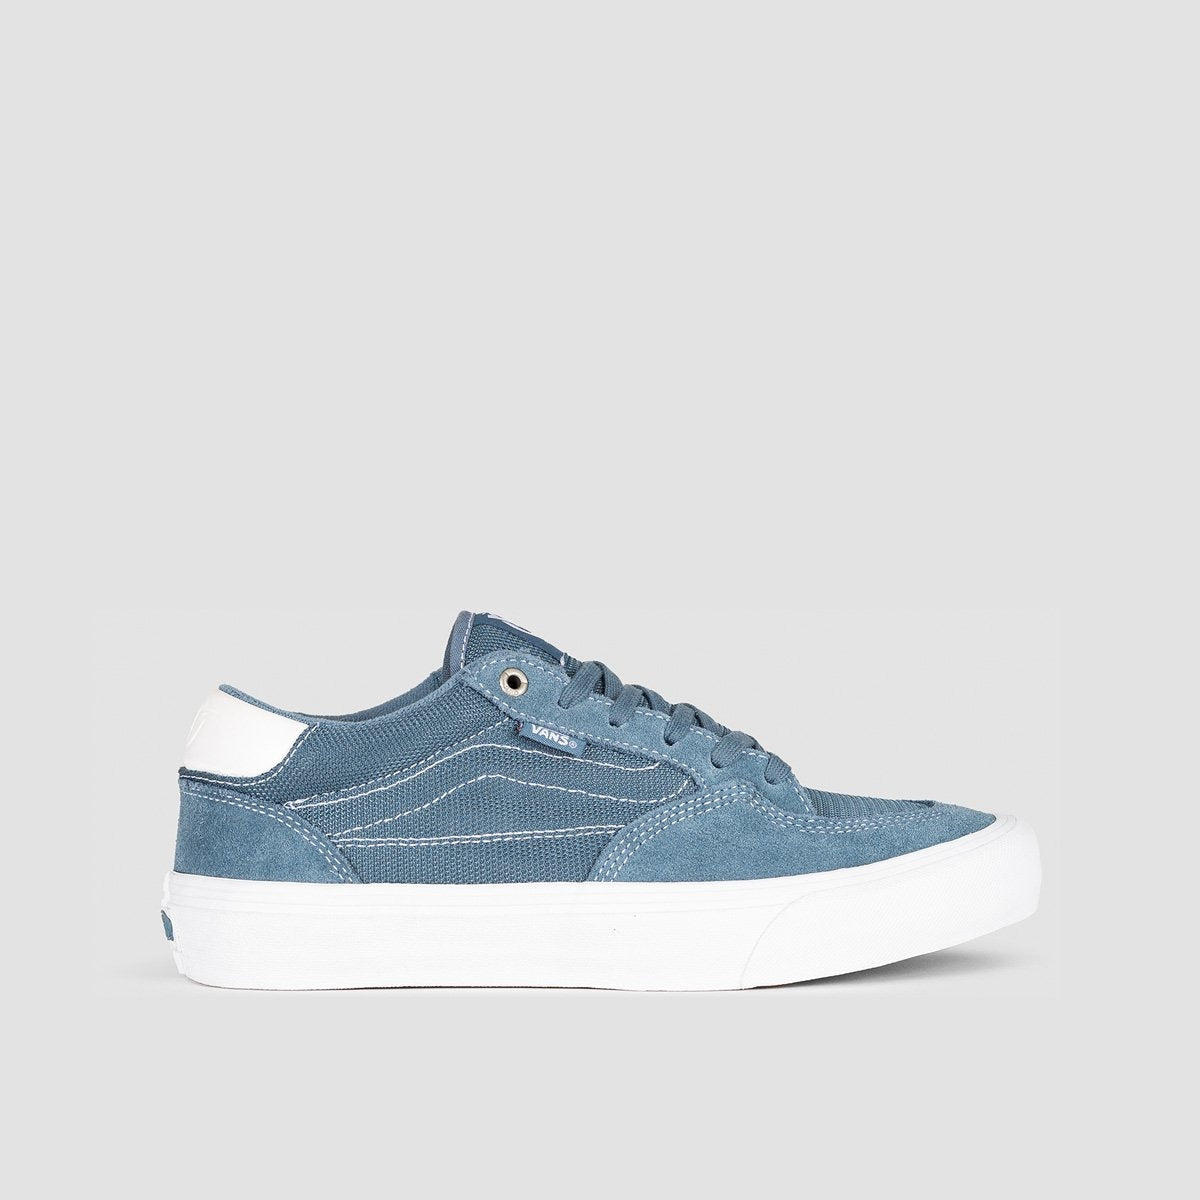 Vans Rowan Pro Mirage Blue/White - Footwear